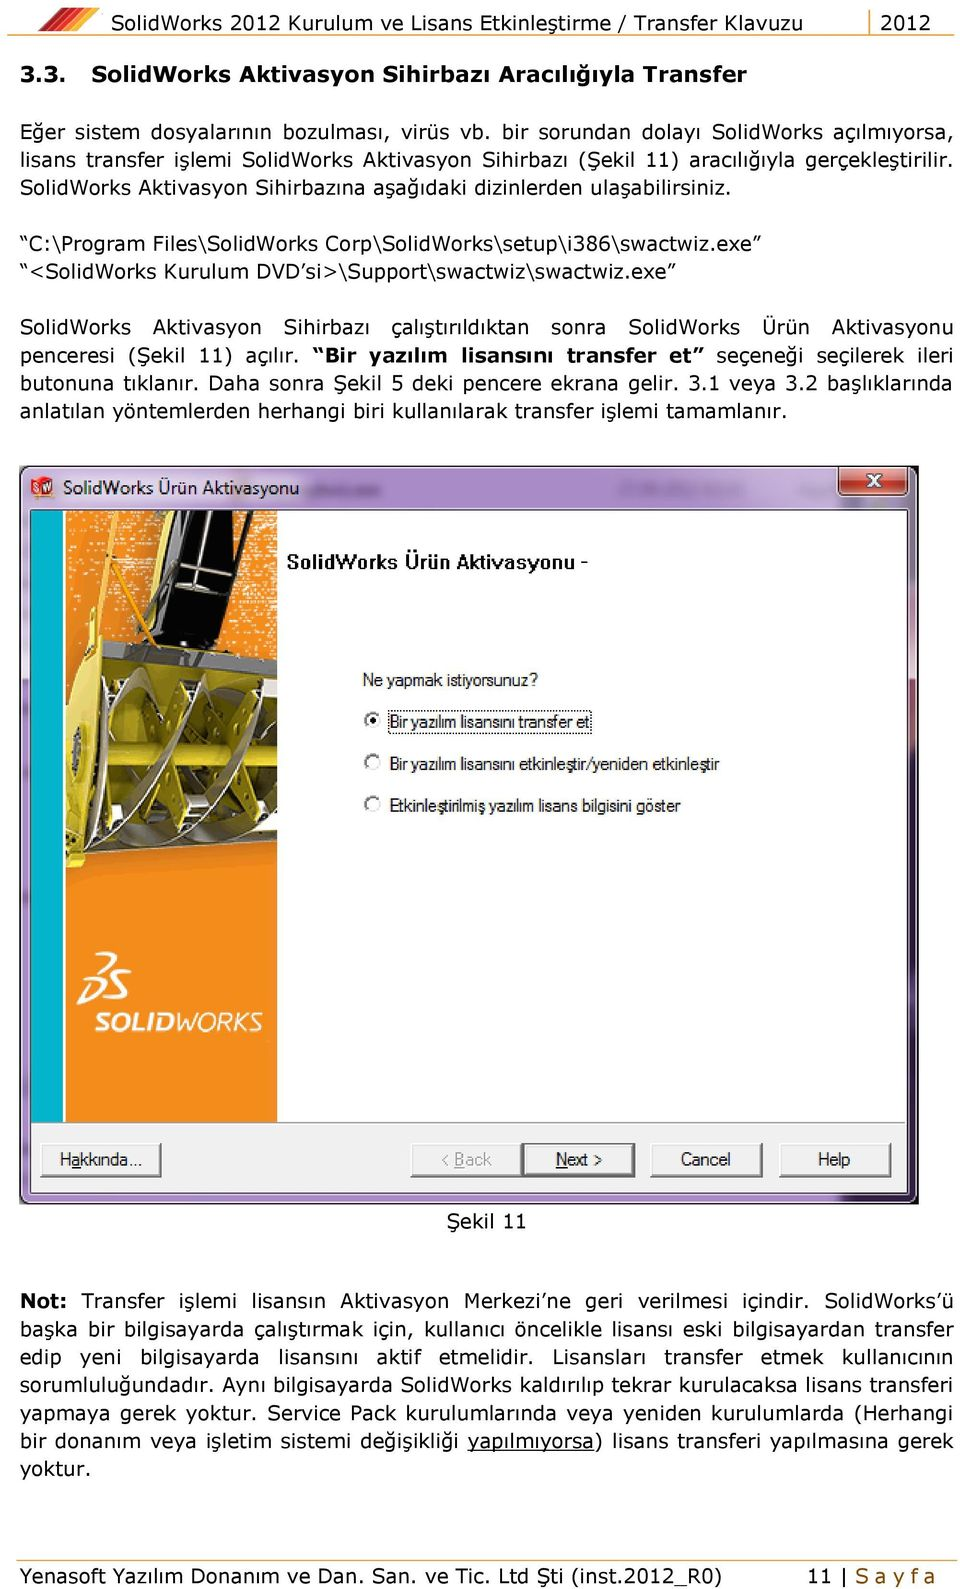 SolidWorks Aktivasyon Sihirbazına aşağıdaki dizinlerden ulaşabilirsiniz. C:\Program Files\SolidWorks Corp\SolidWorks\setup\i386\swactwiz.exe <SolidWorks Kurulum DVD si>\support\swactwiz\swactwiz.